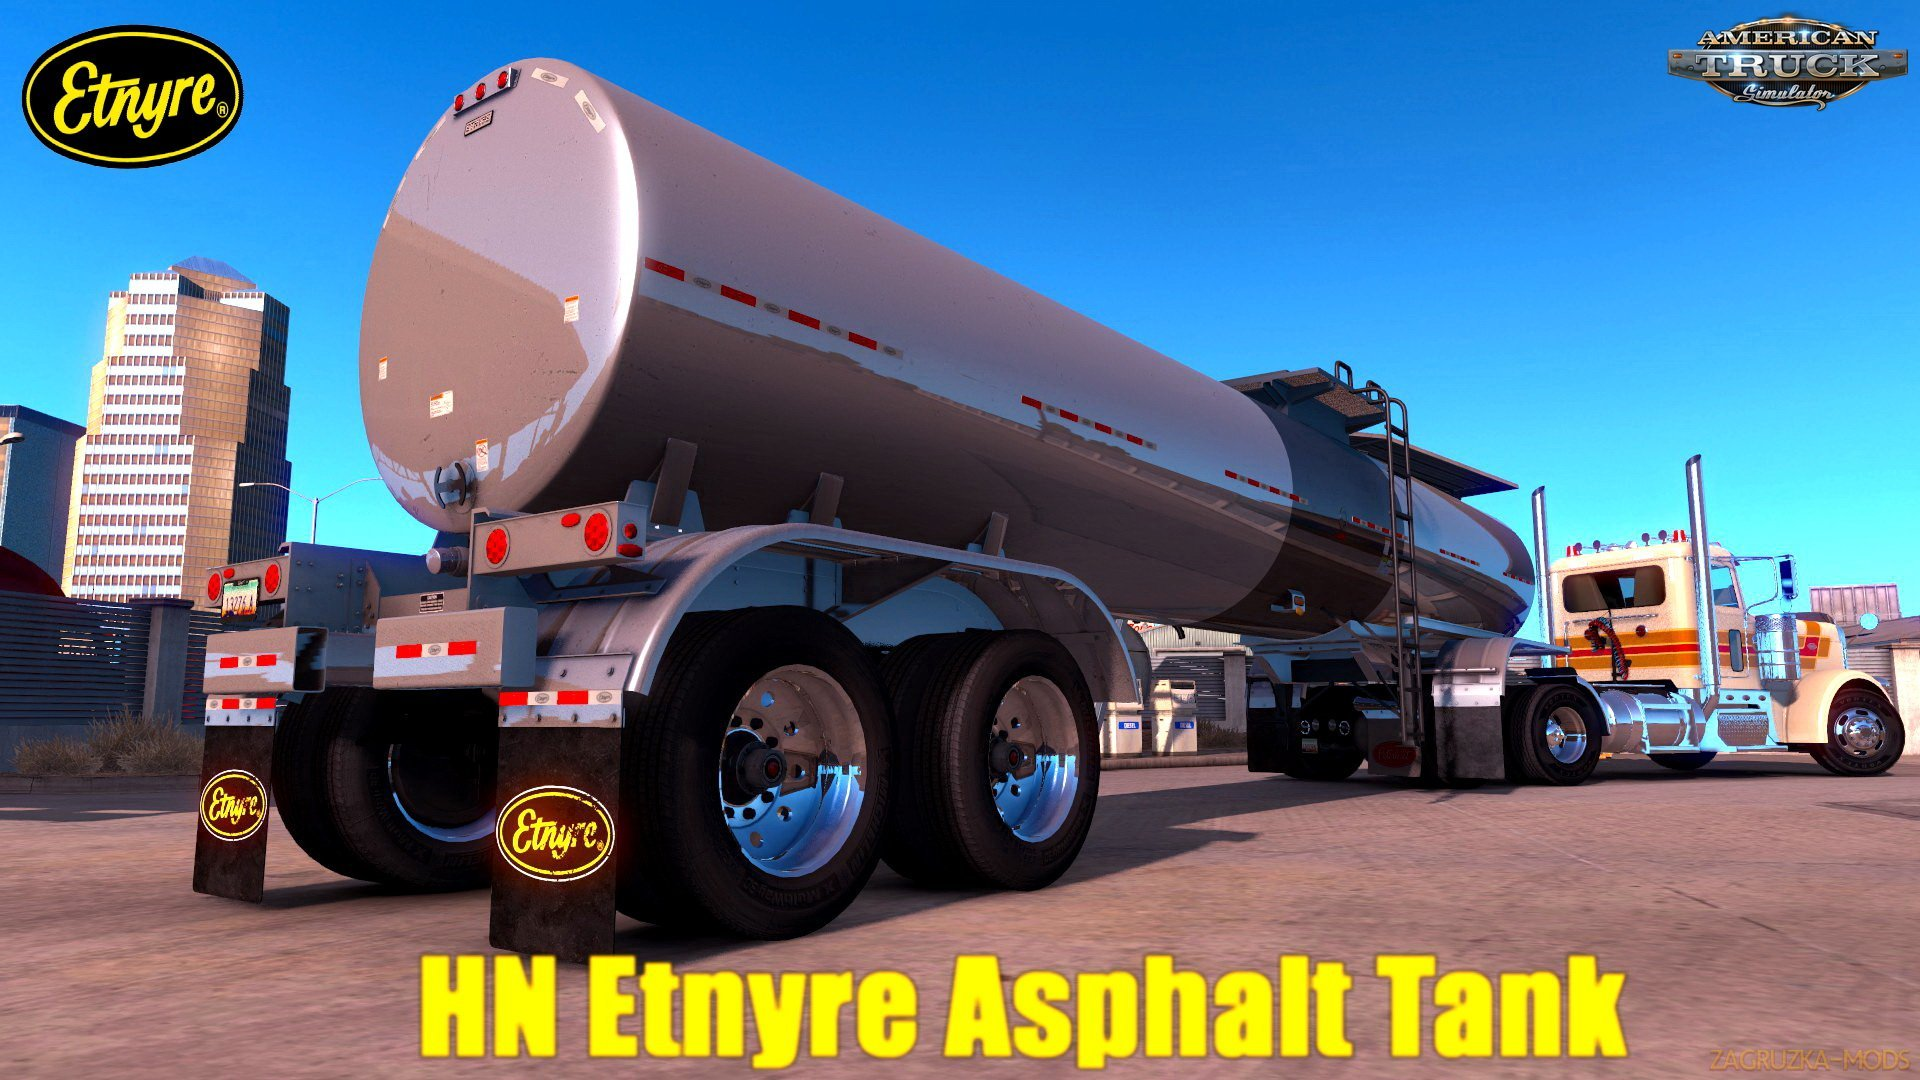 Trailer Etnyre Asphalt Tanker Ownable v3.0 (1.35.x) for ATS